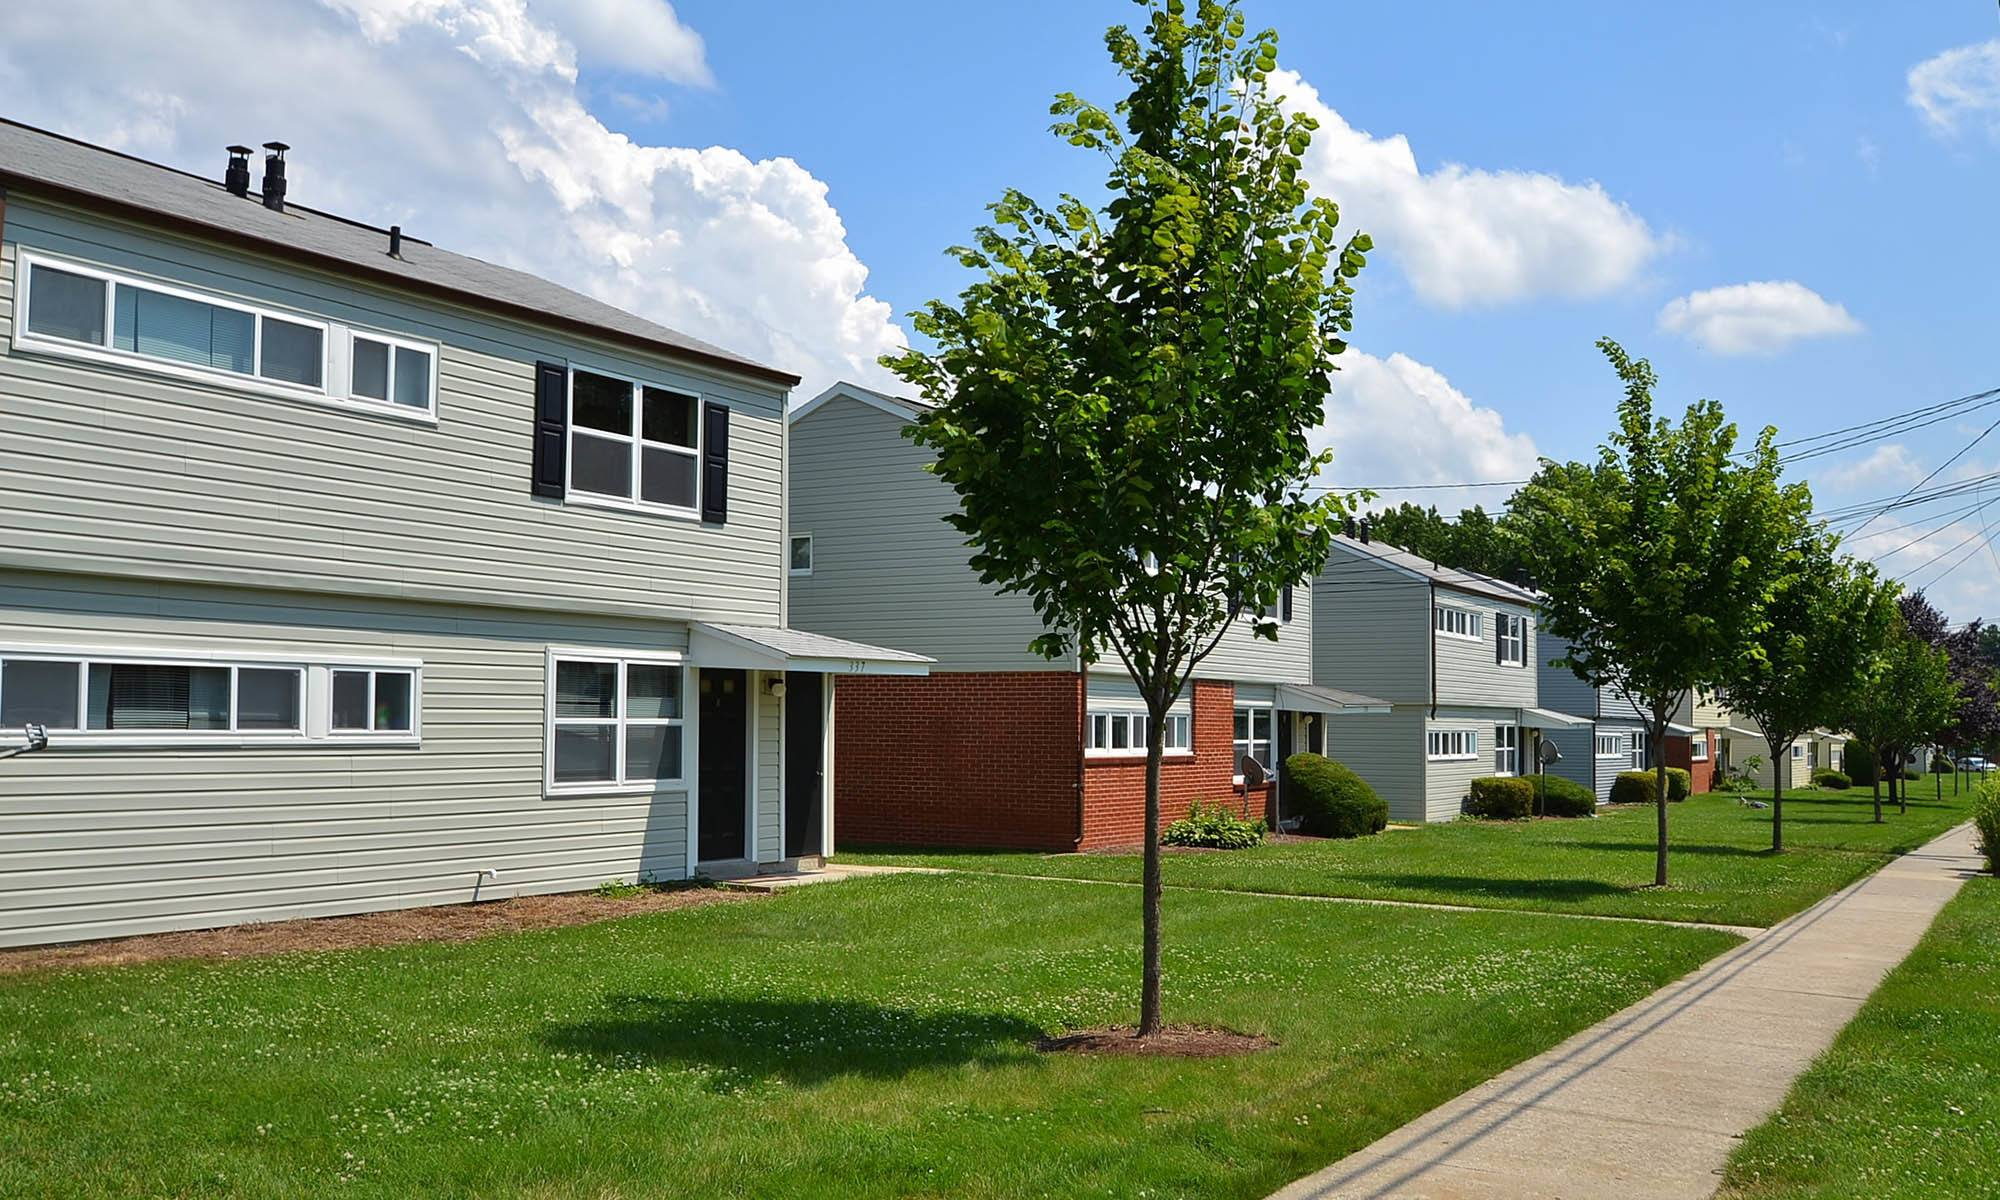 2 bedrooms offered at apartments in Catonsville